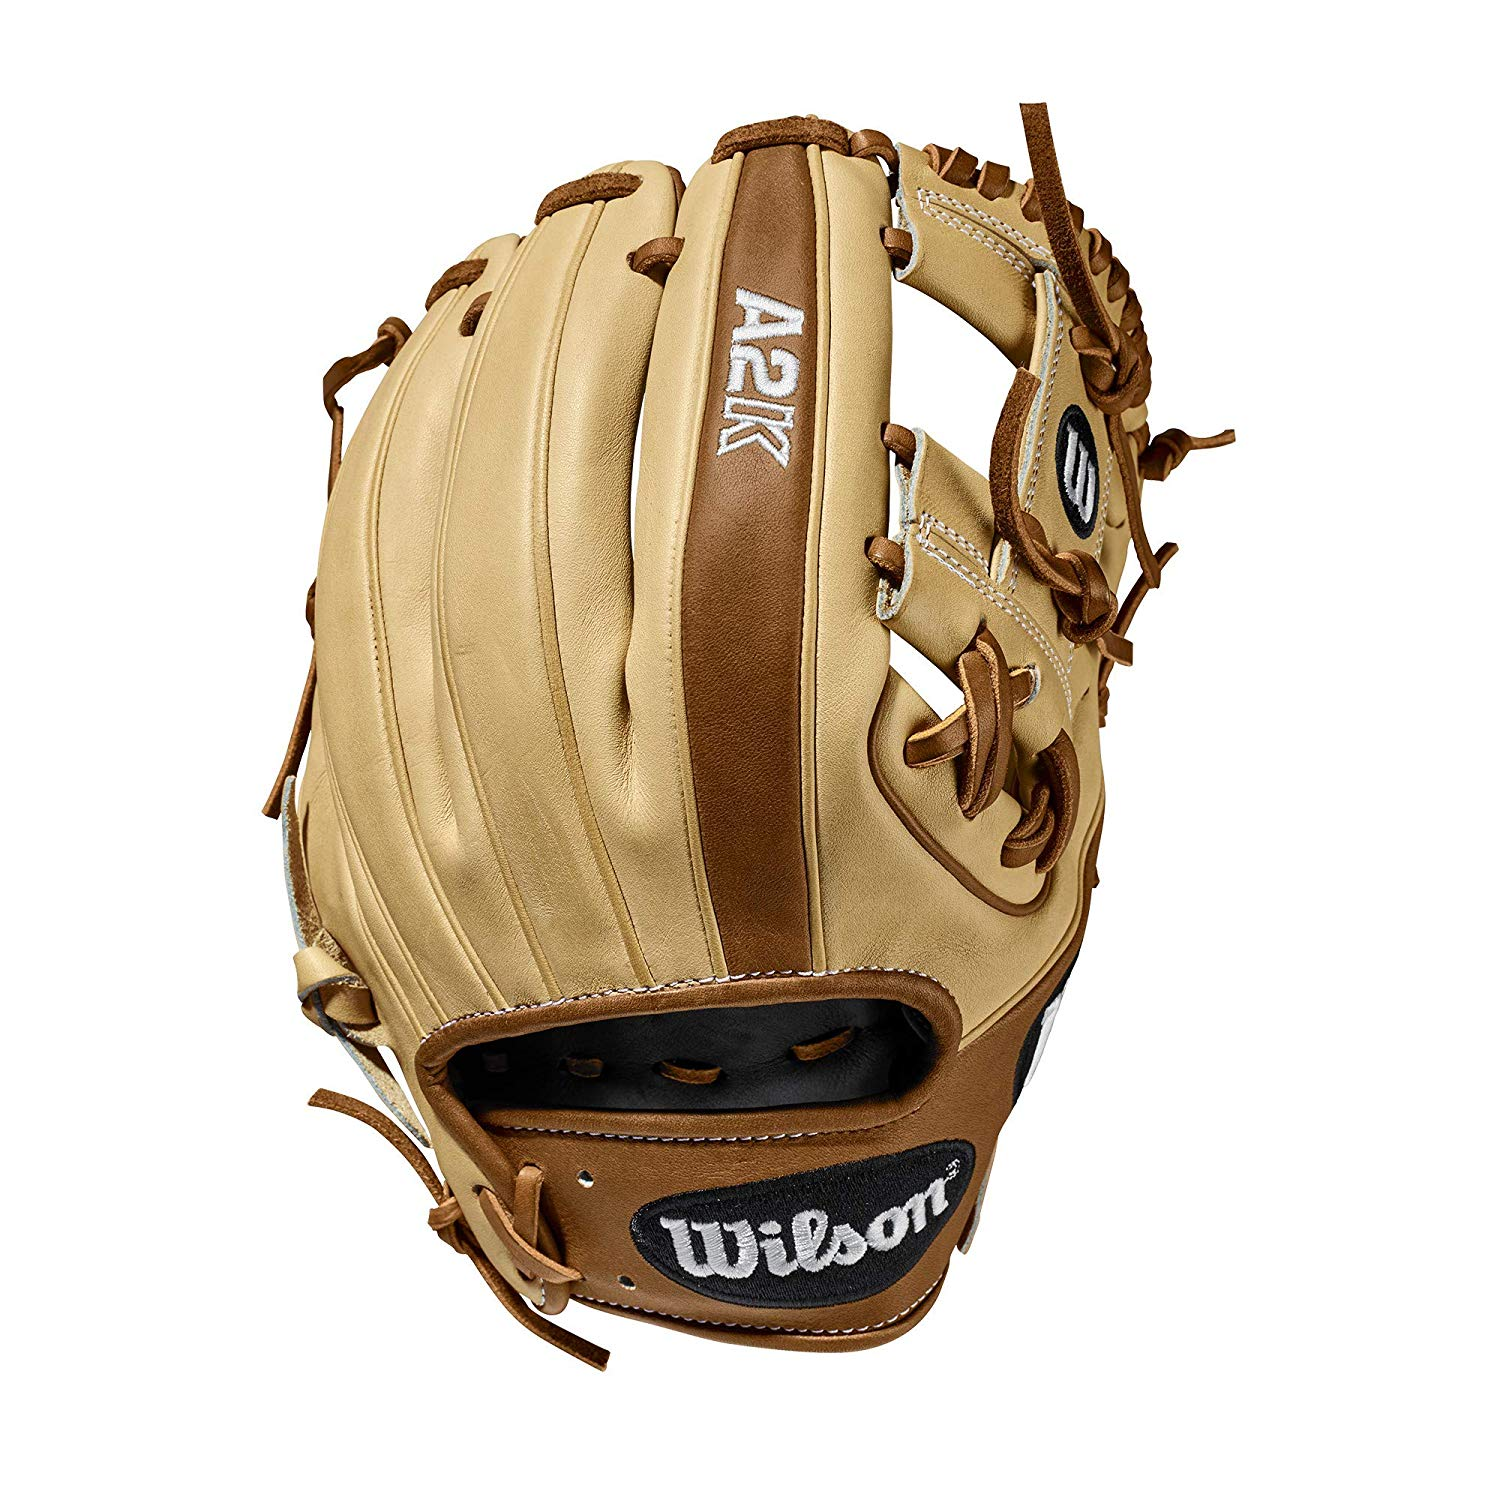 wilson-a2k-rb20-1786-baseball-glove-11-5-right-hand-throw WTA2KRB201786-RightHandThrow Wilson 887768815196 H-Web Design and three times more shaping to help reduce break-in